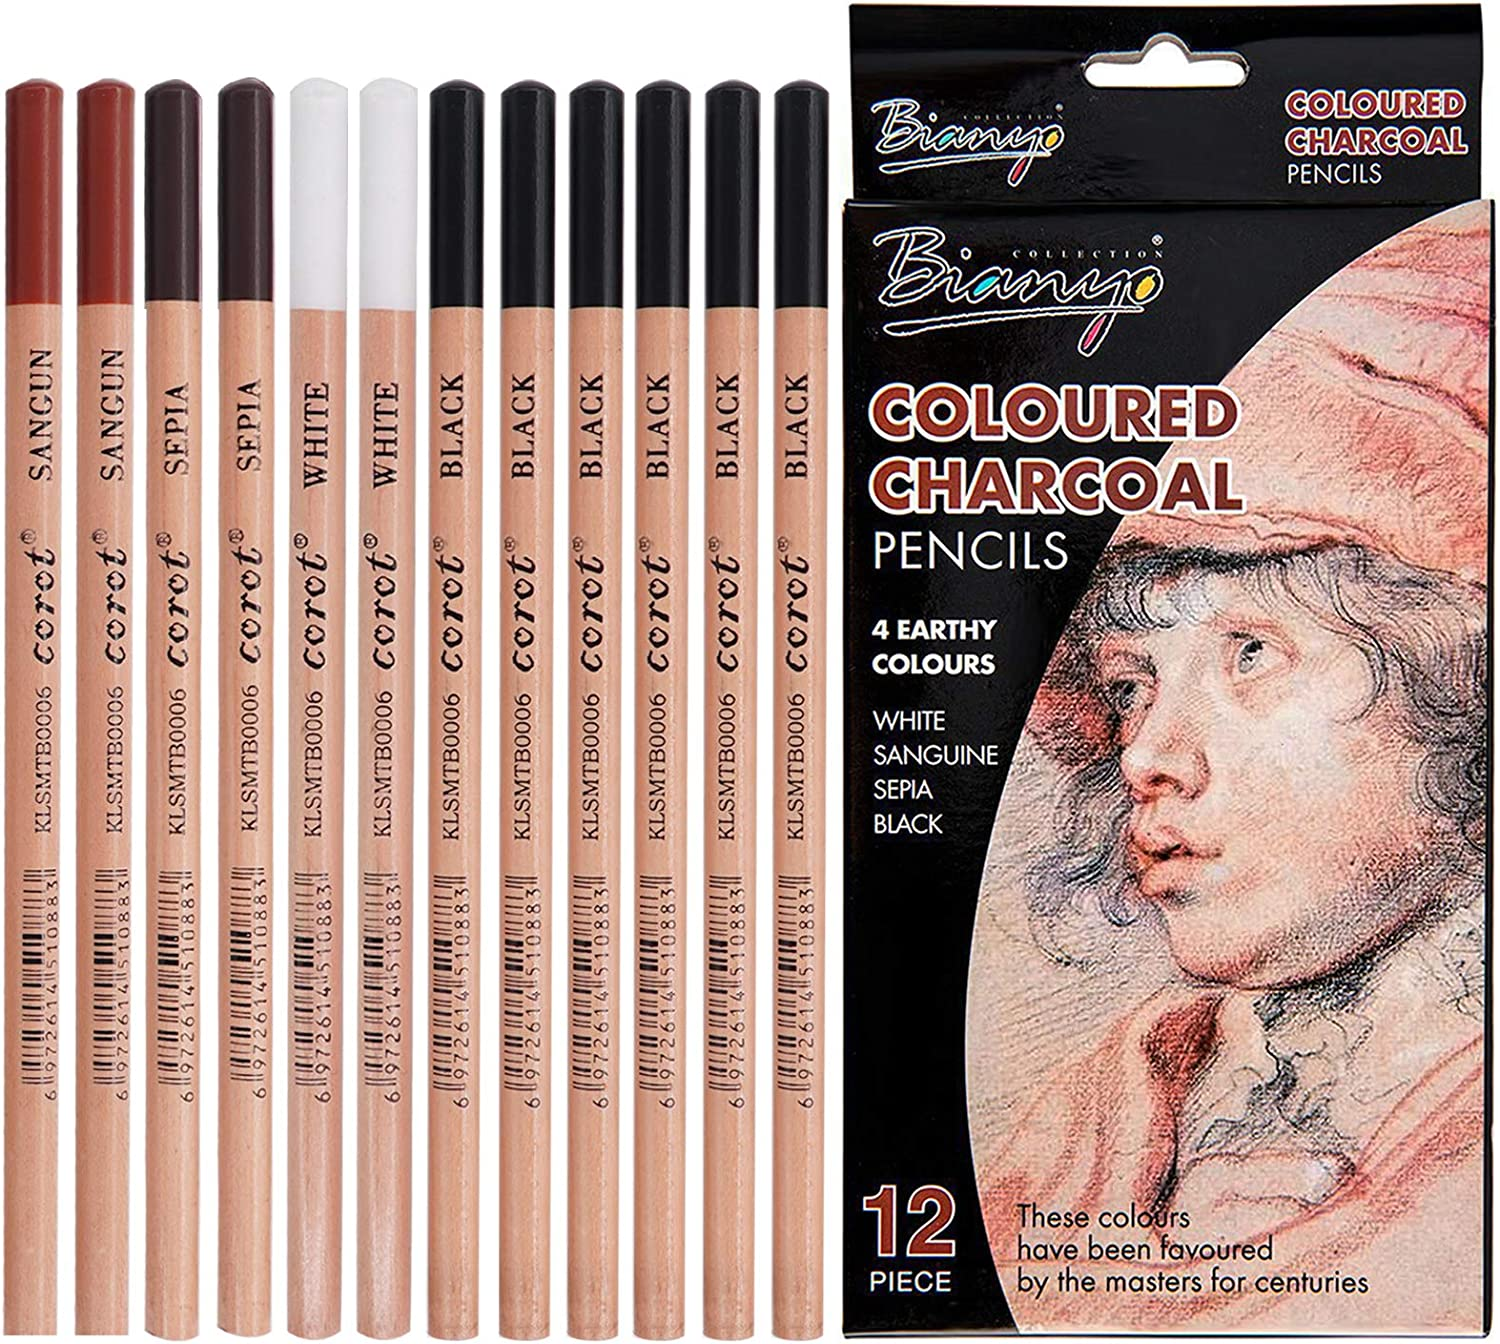 12 Pcs Coloured Charcoal Pencil Set 4 Colors 3 Hardness. Johiux Charcoal Drawing Pencils for Beginners